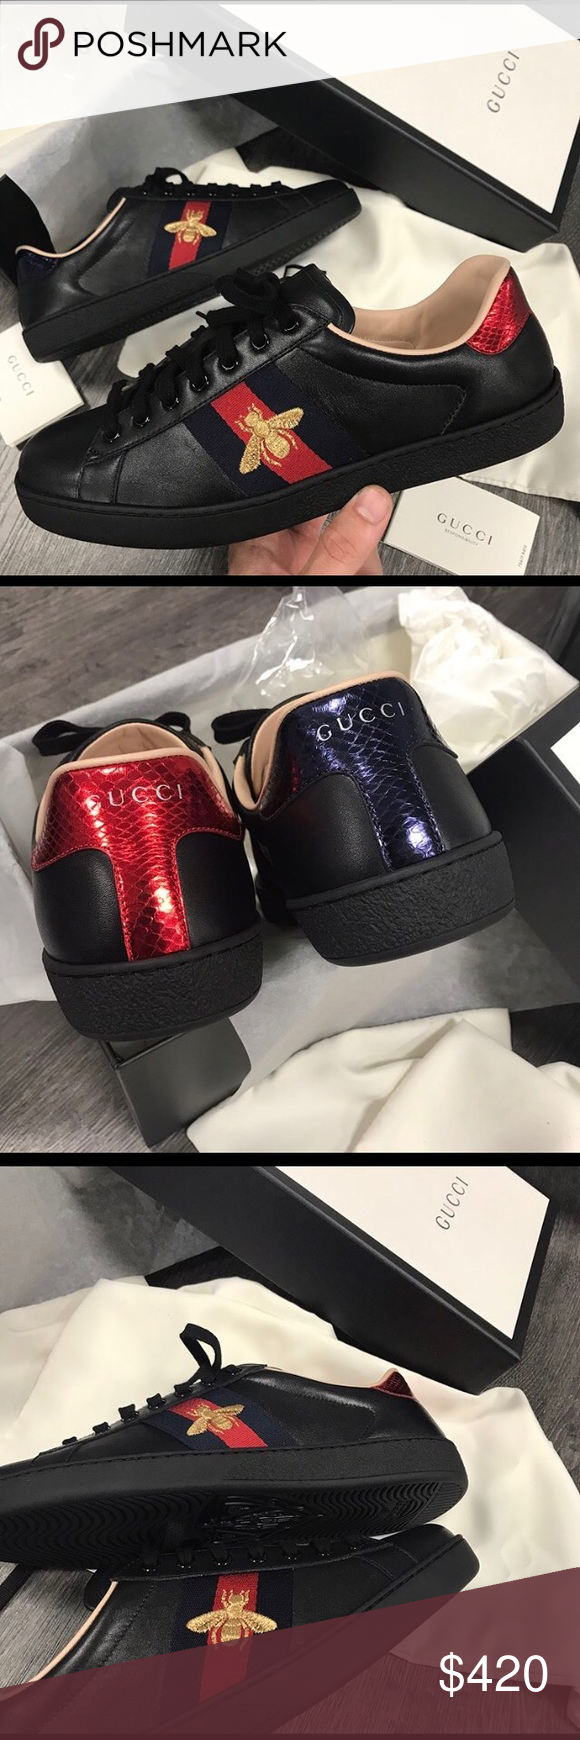 9ce3faf06d5 ⚫ 🇧🇬🐝Gucci Ace Bee🐝Sneakers Black 🐝🇧🇬🐝🇧🇬 100%AUTHENTIC ...